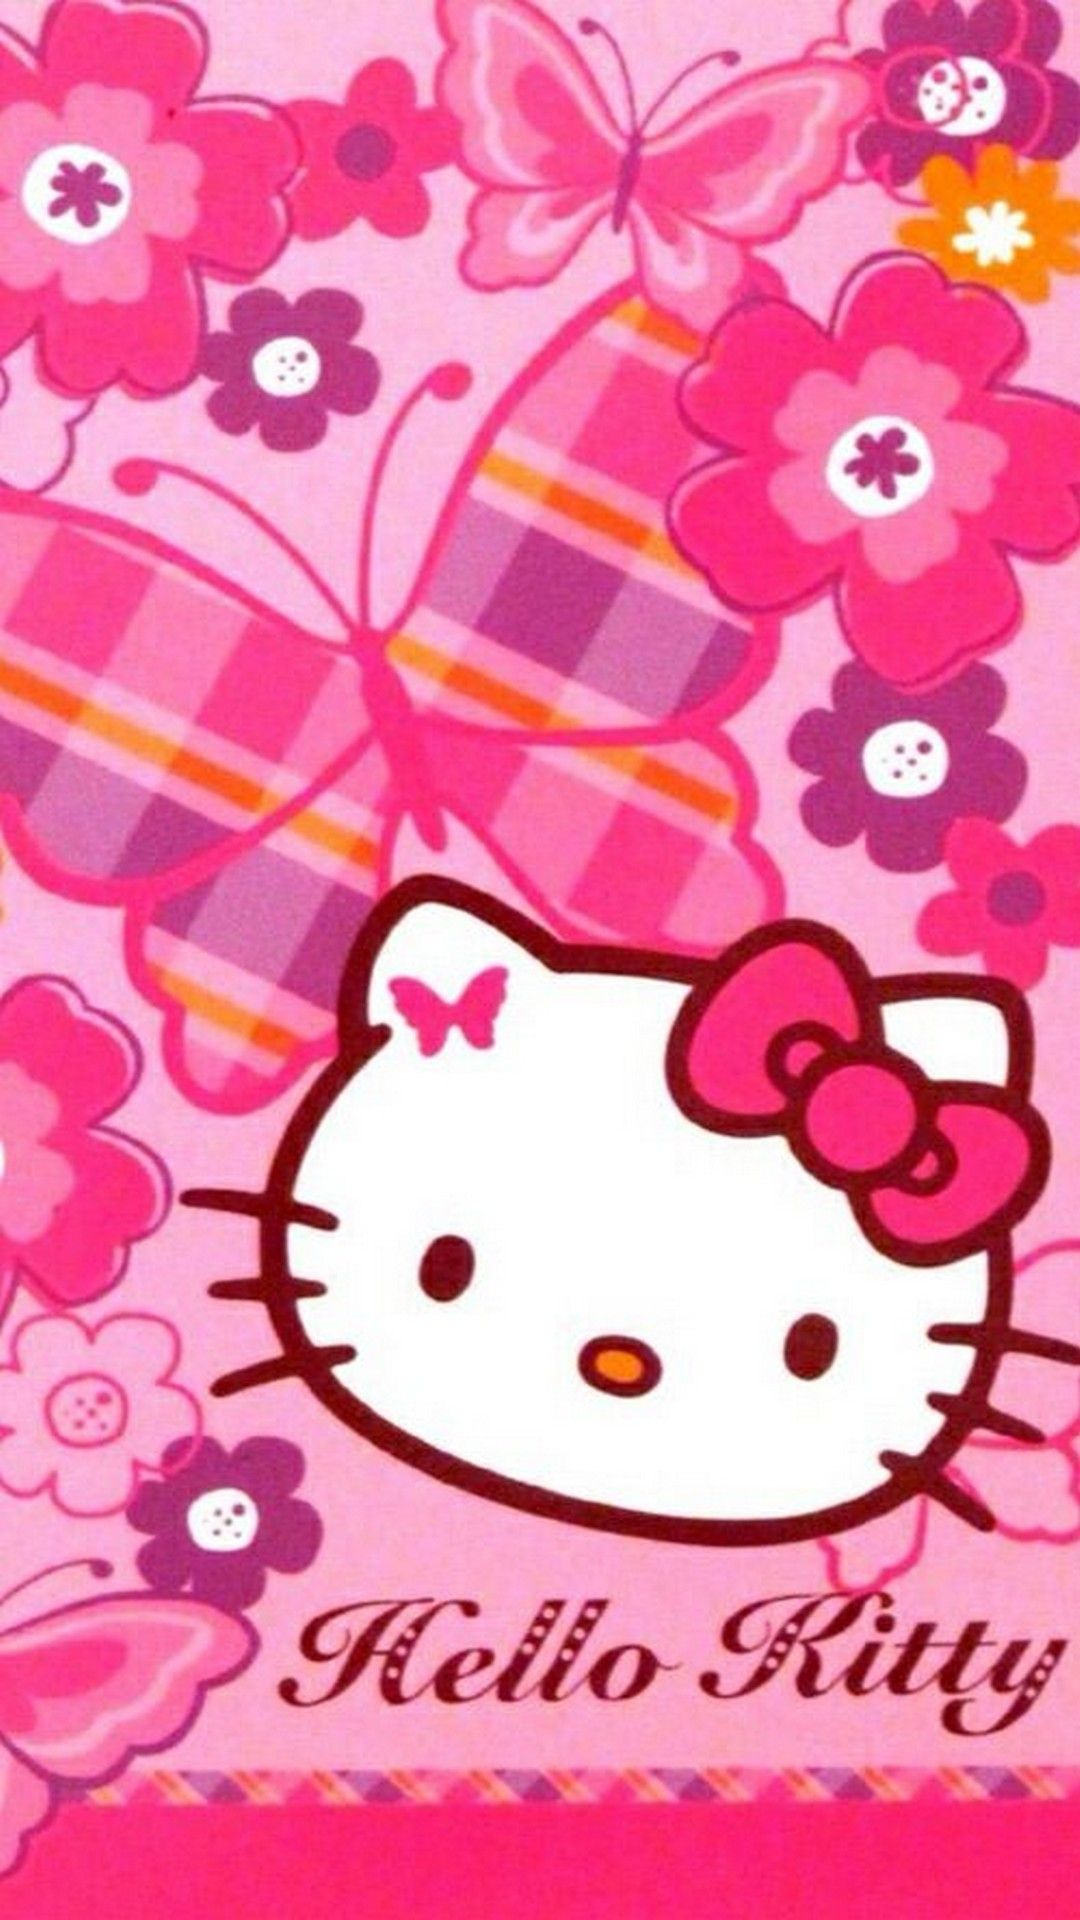 Sanrio Hello Kitty Iphone 7 Plus Wallpaper With Images Hello